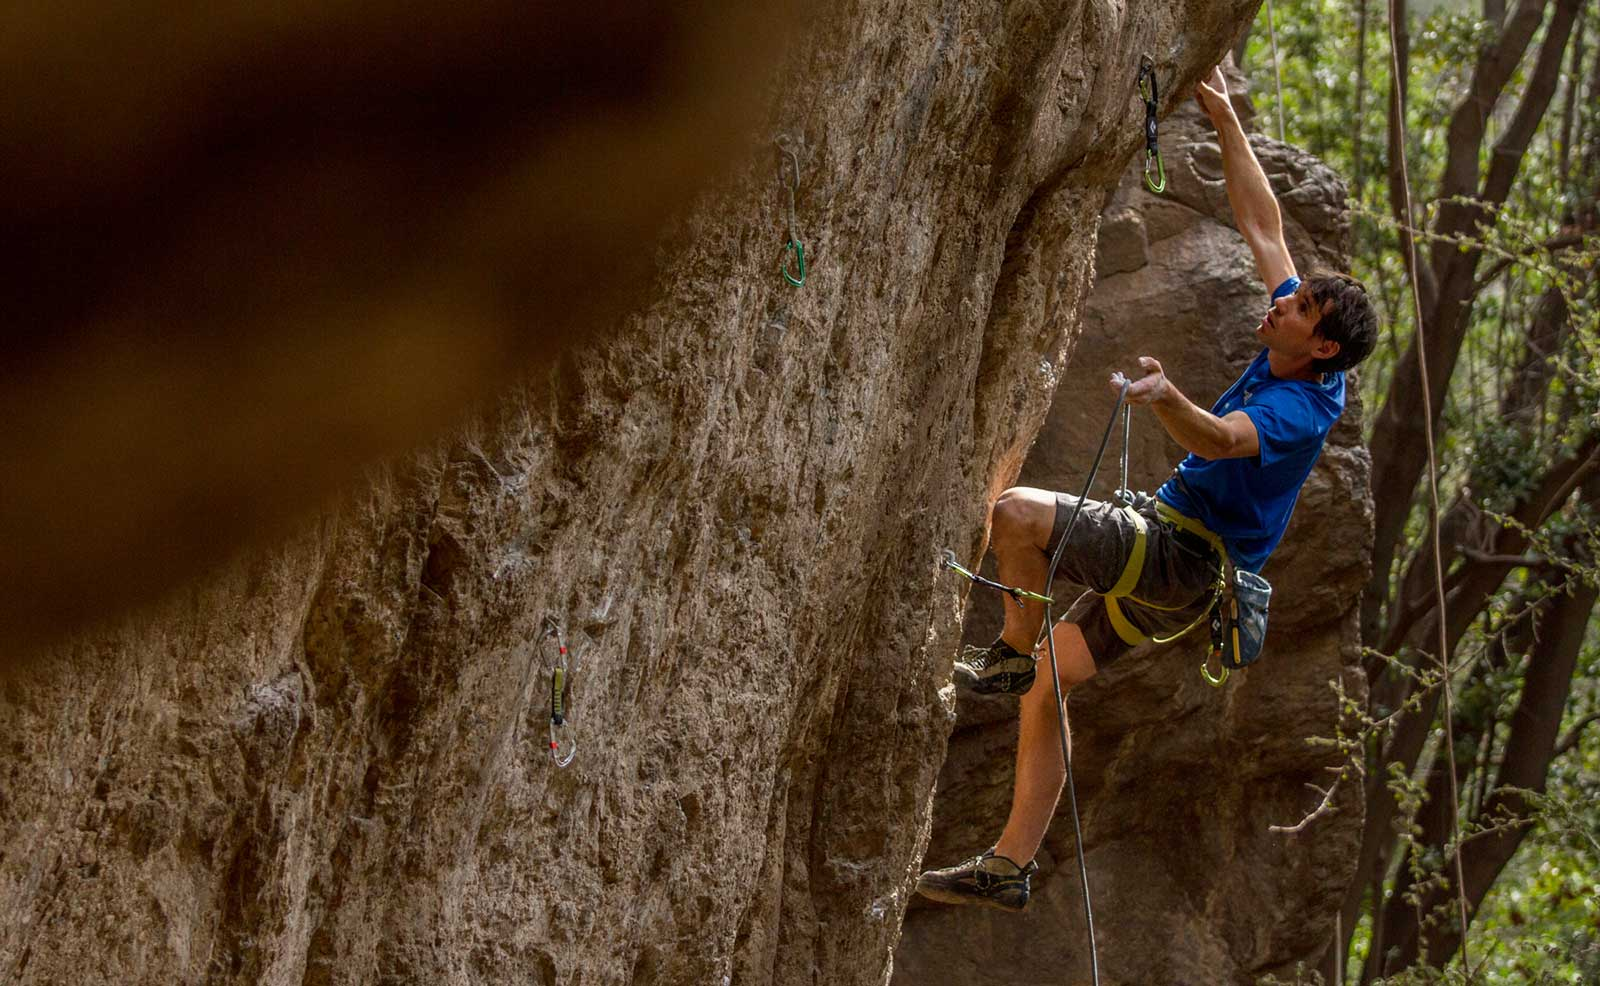 Just a normal day of climbing… with Alex Honnold!